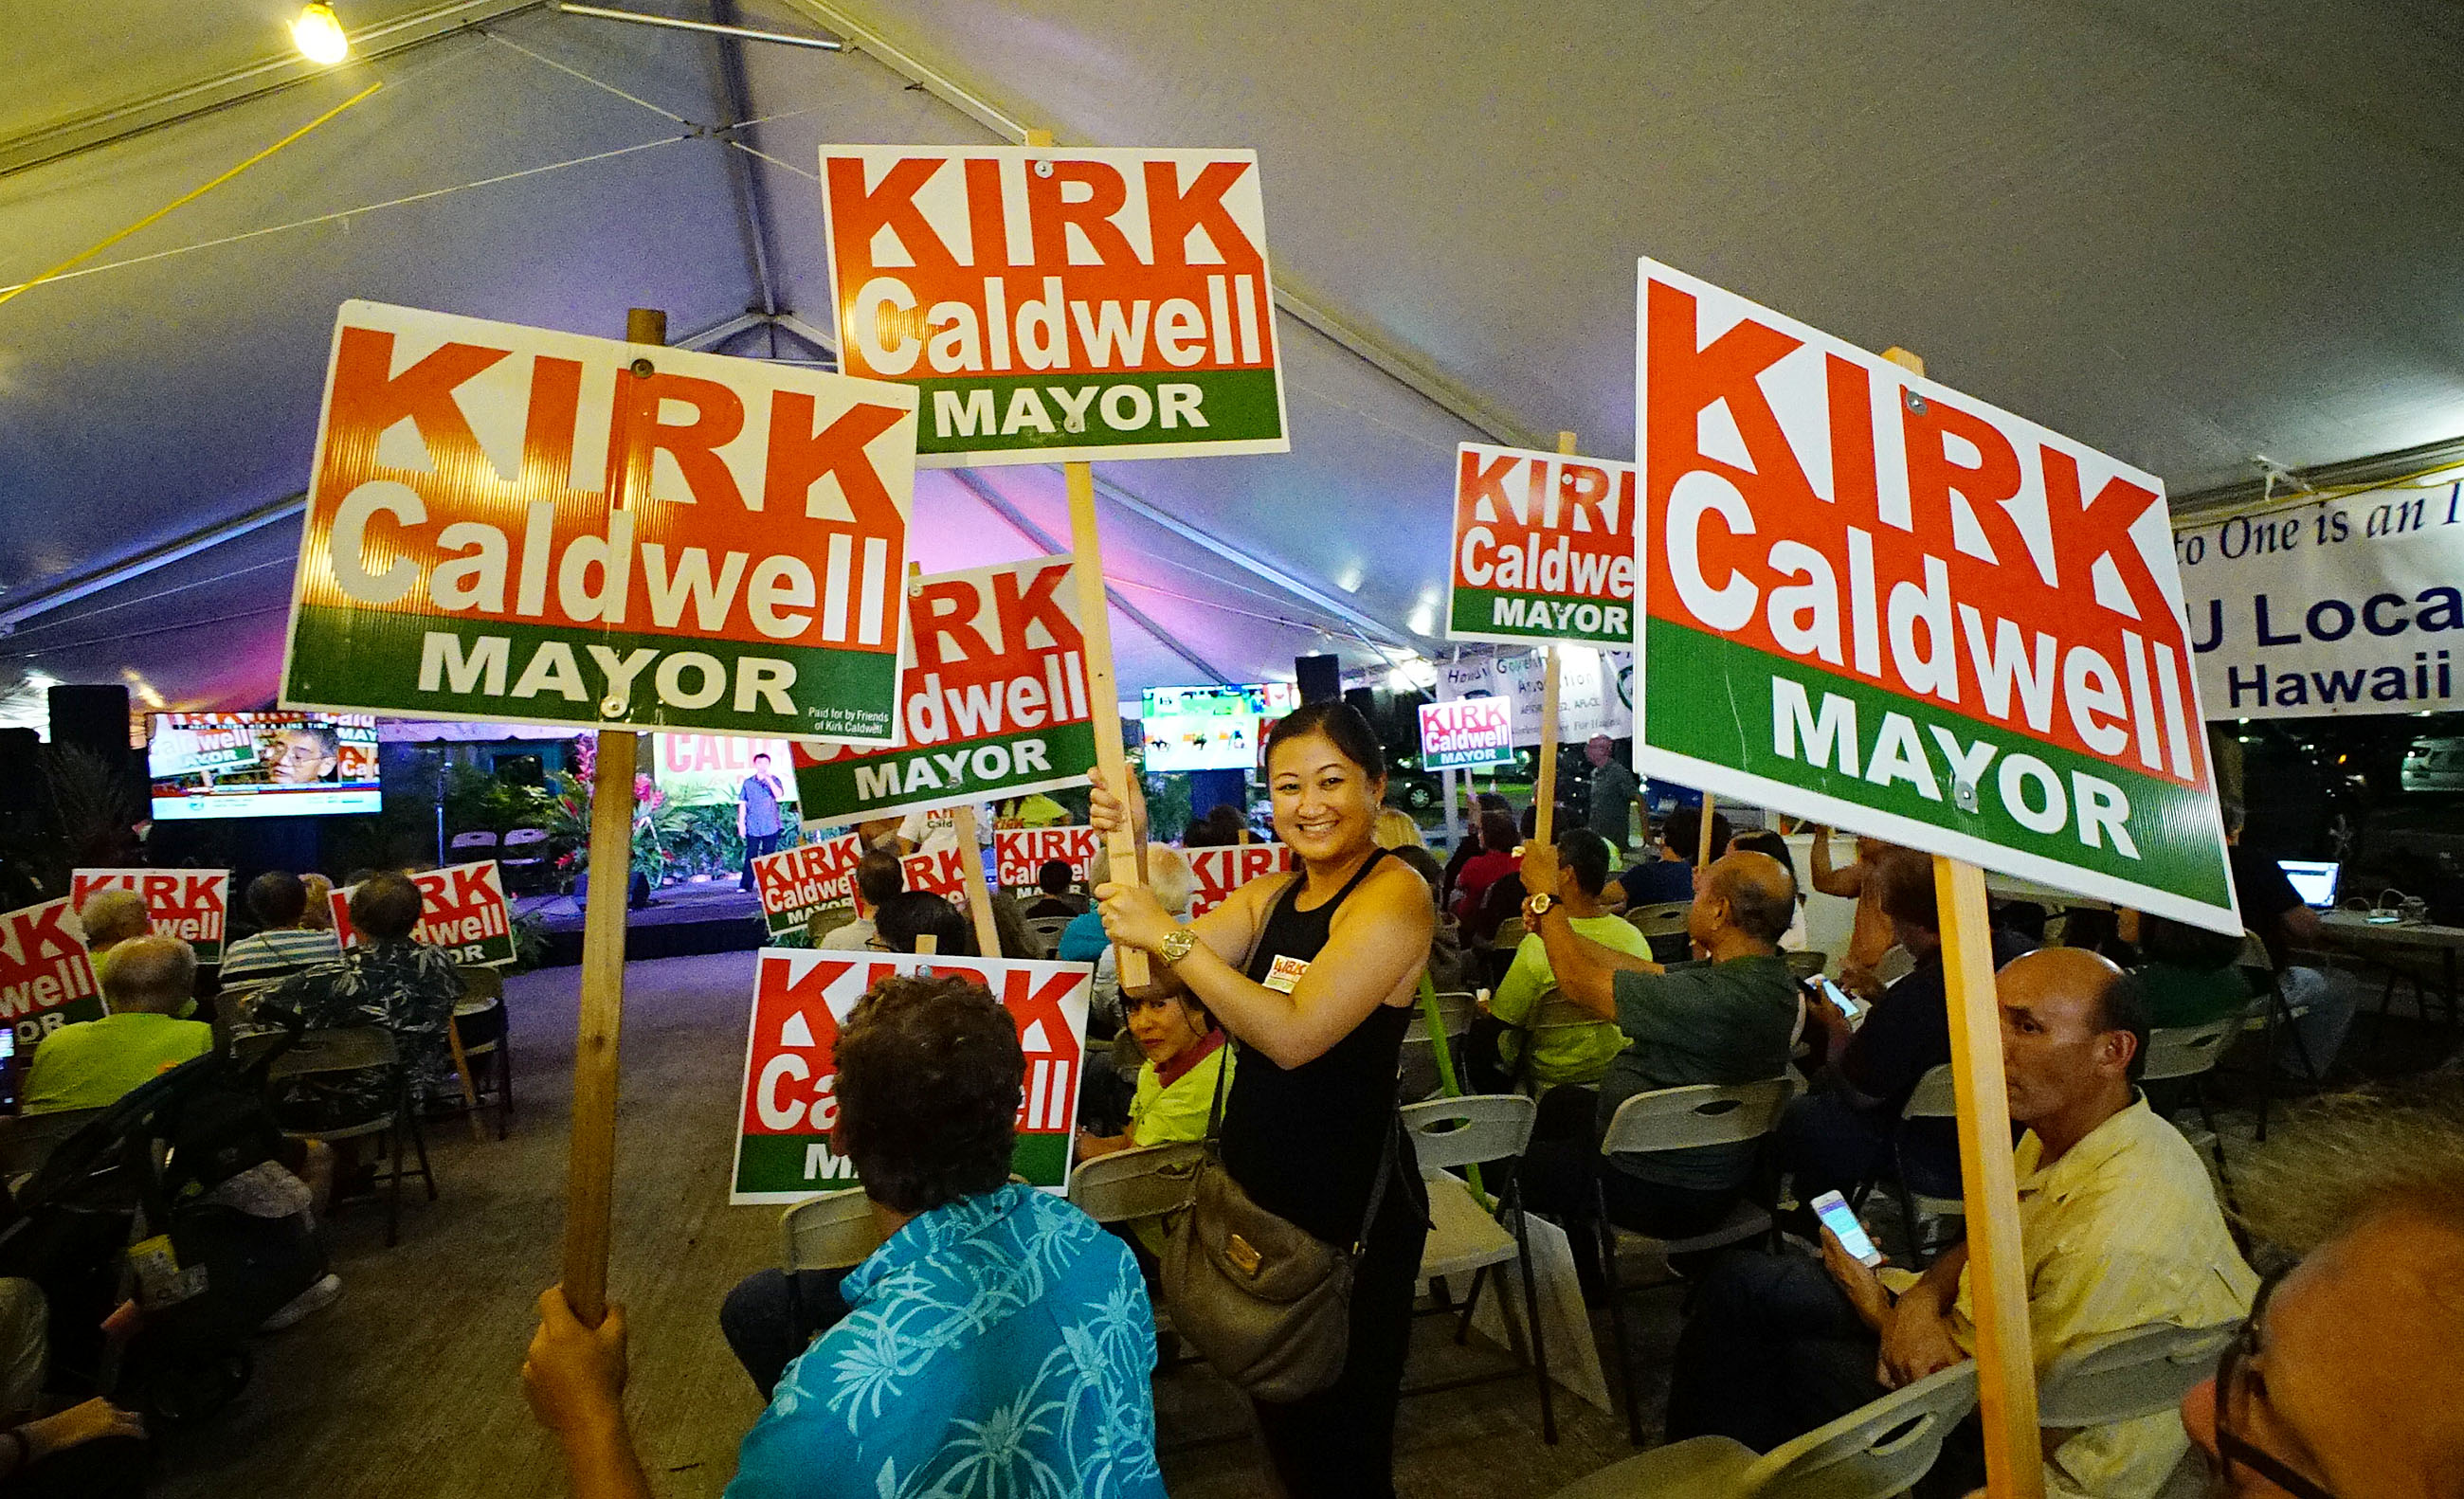 <p>When the first returns were announced, supporters of Mayor Kirk Caldwell celebrated his early lead at campaign headquarters on Nimitz Boulevard. (Civil Beat/Cory Lum)</p>